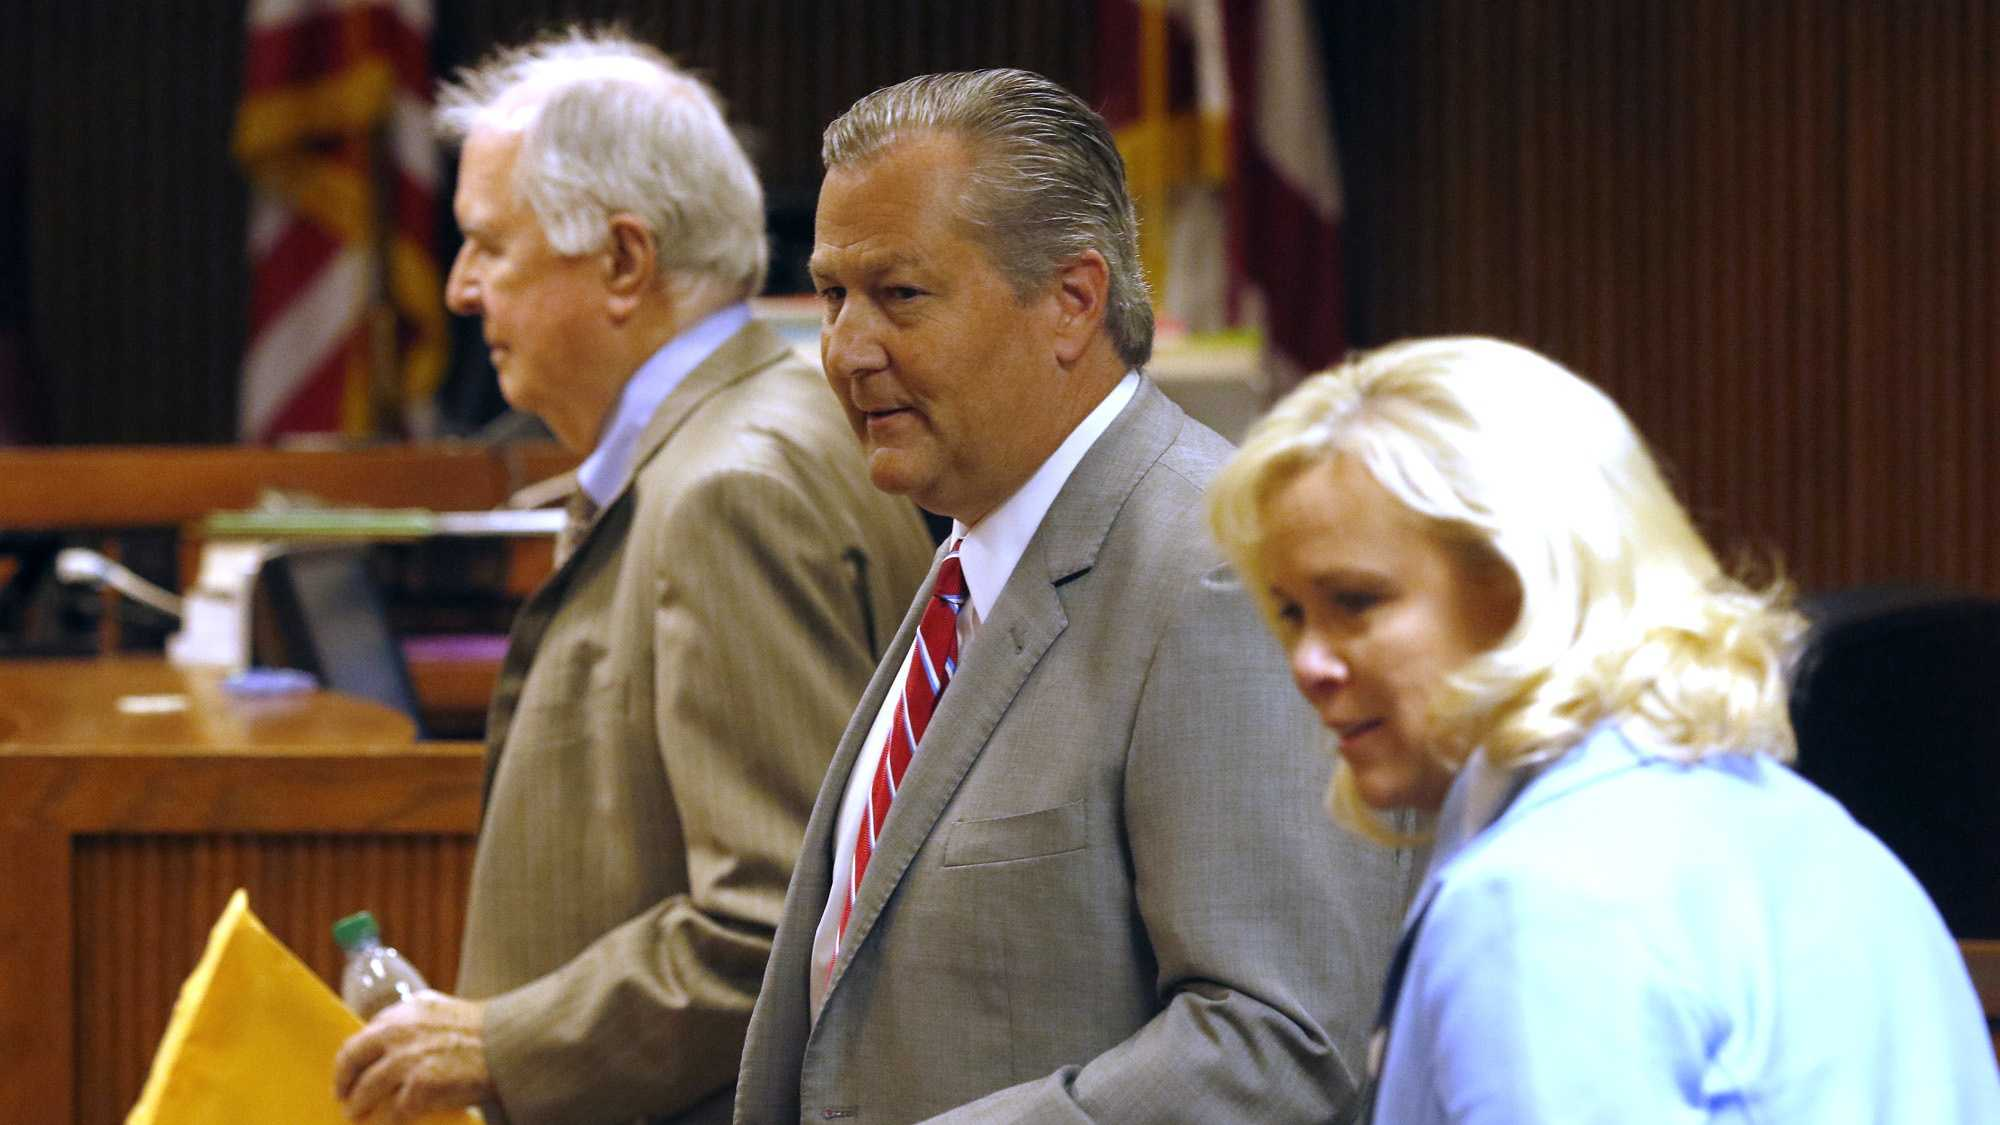 Mike Hubbard enters the courtroom for sentencing on Friday, July 8, 2016, in Opelika, Ala.